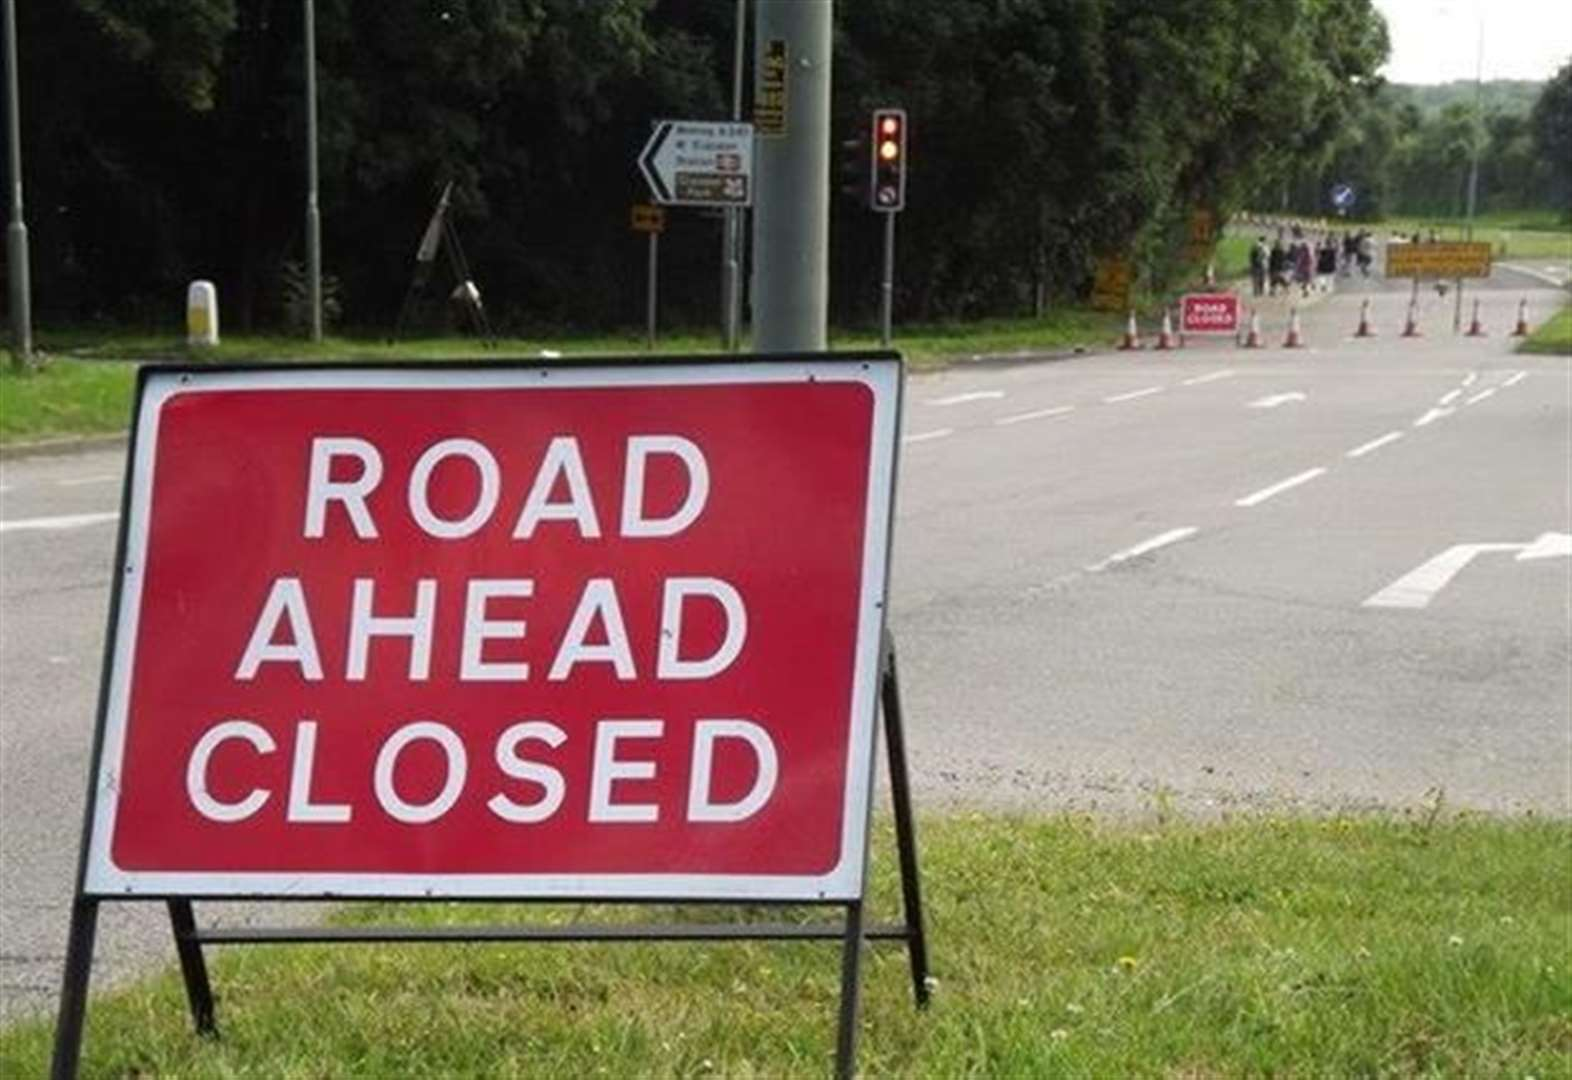 A14 and A11 disruption in roadworks this week